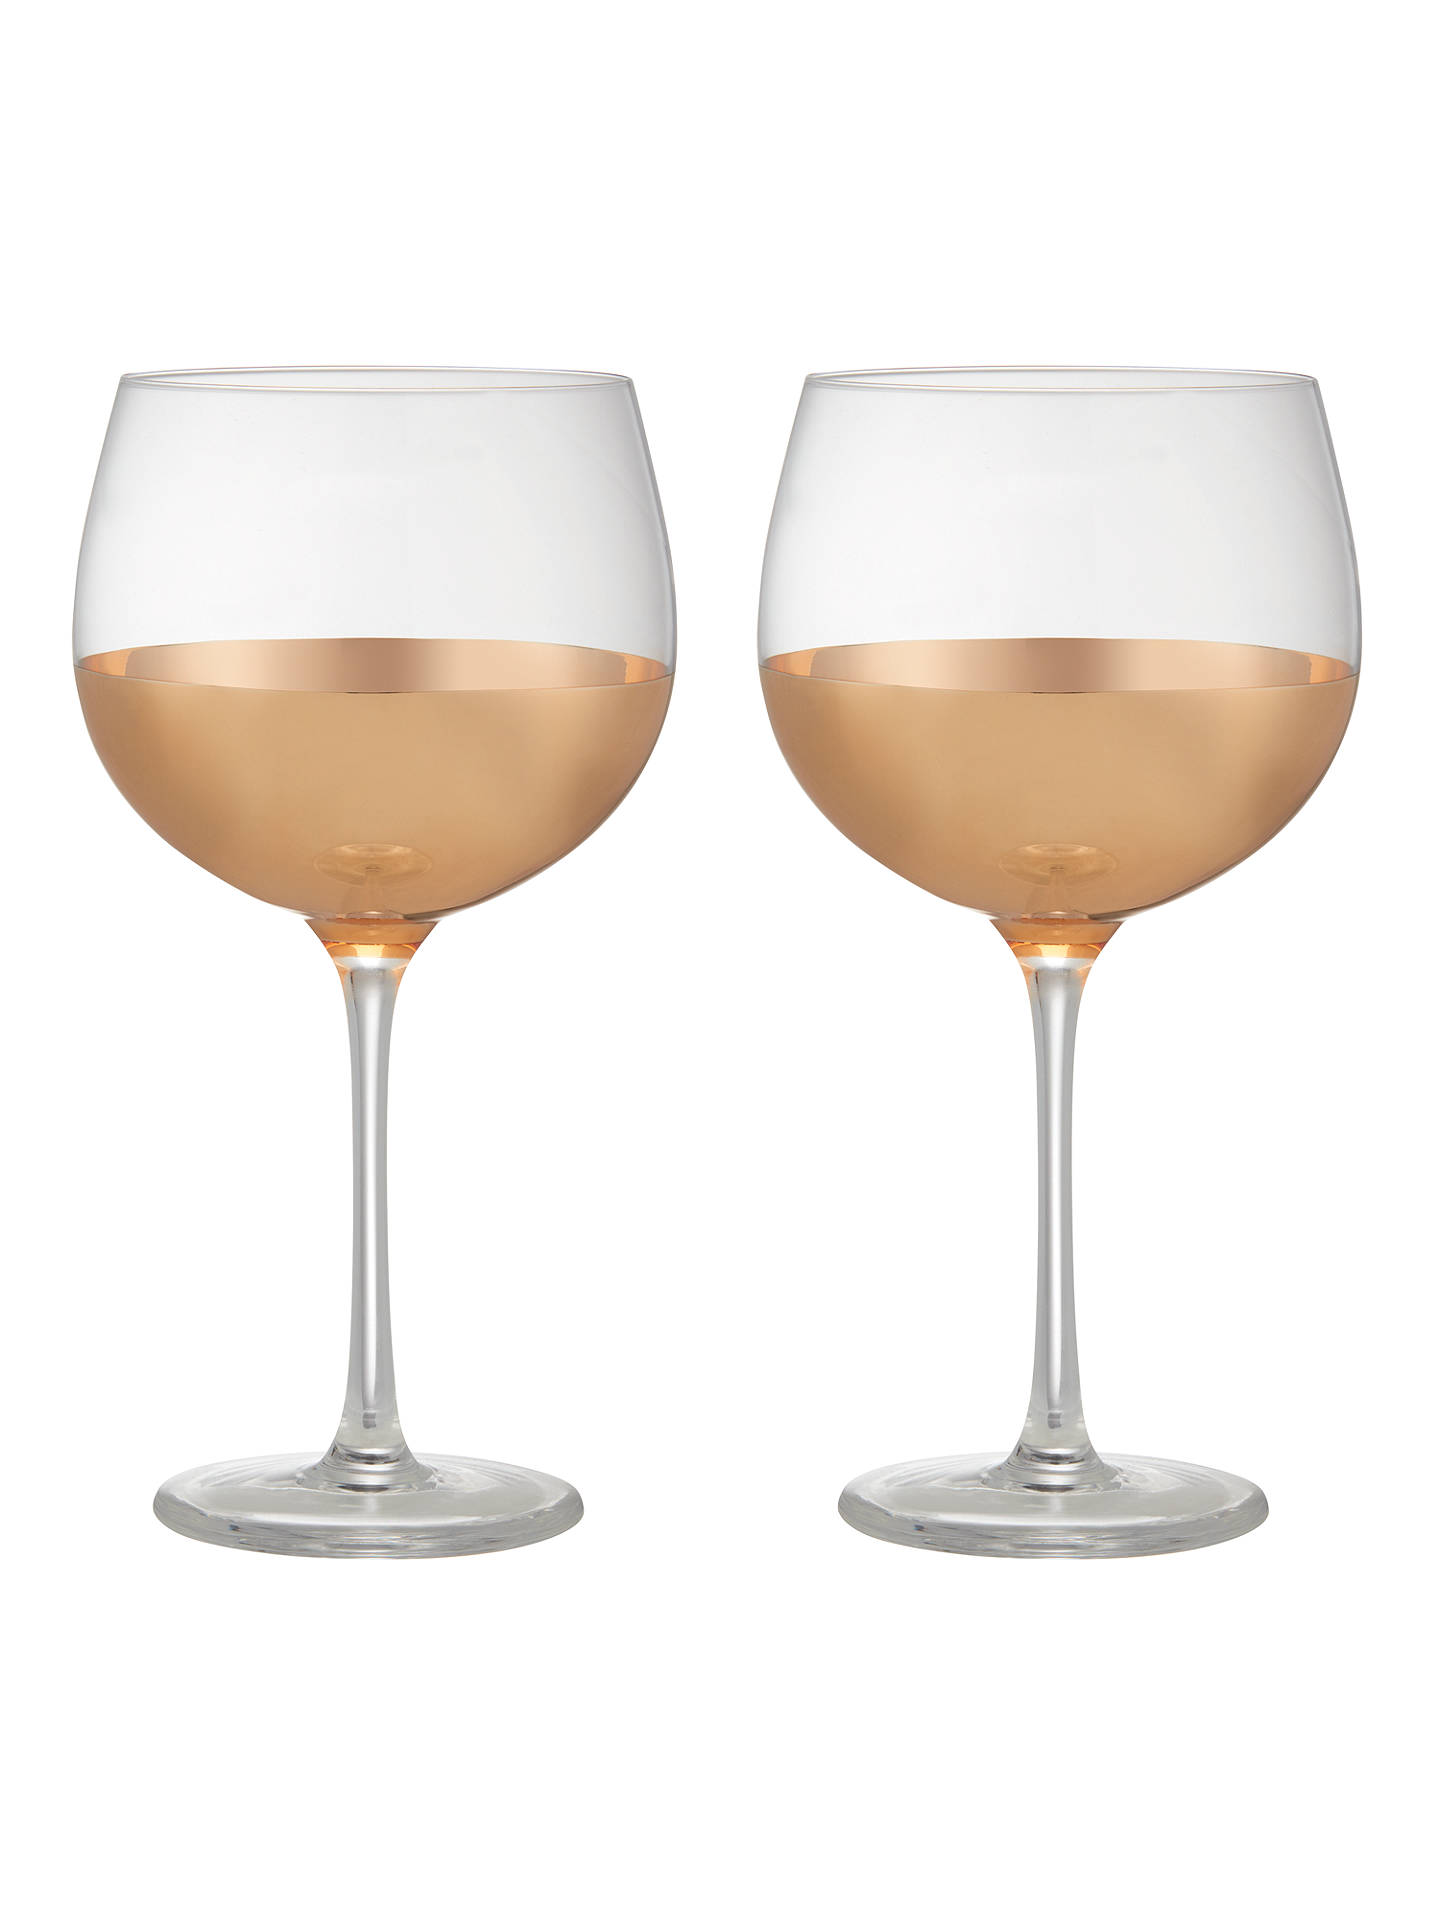 BuyJohn Lewis & Partners Gin Glasses, 550ml, Set of 2, Clear/Gold Online at johnlewis.com